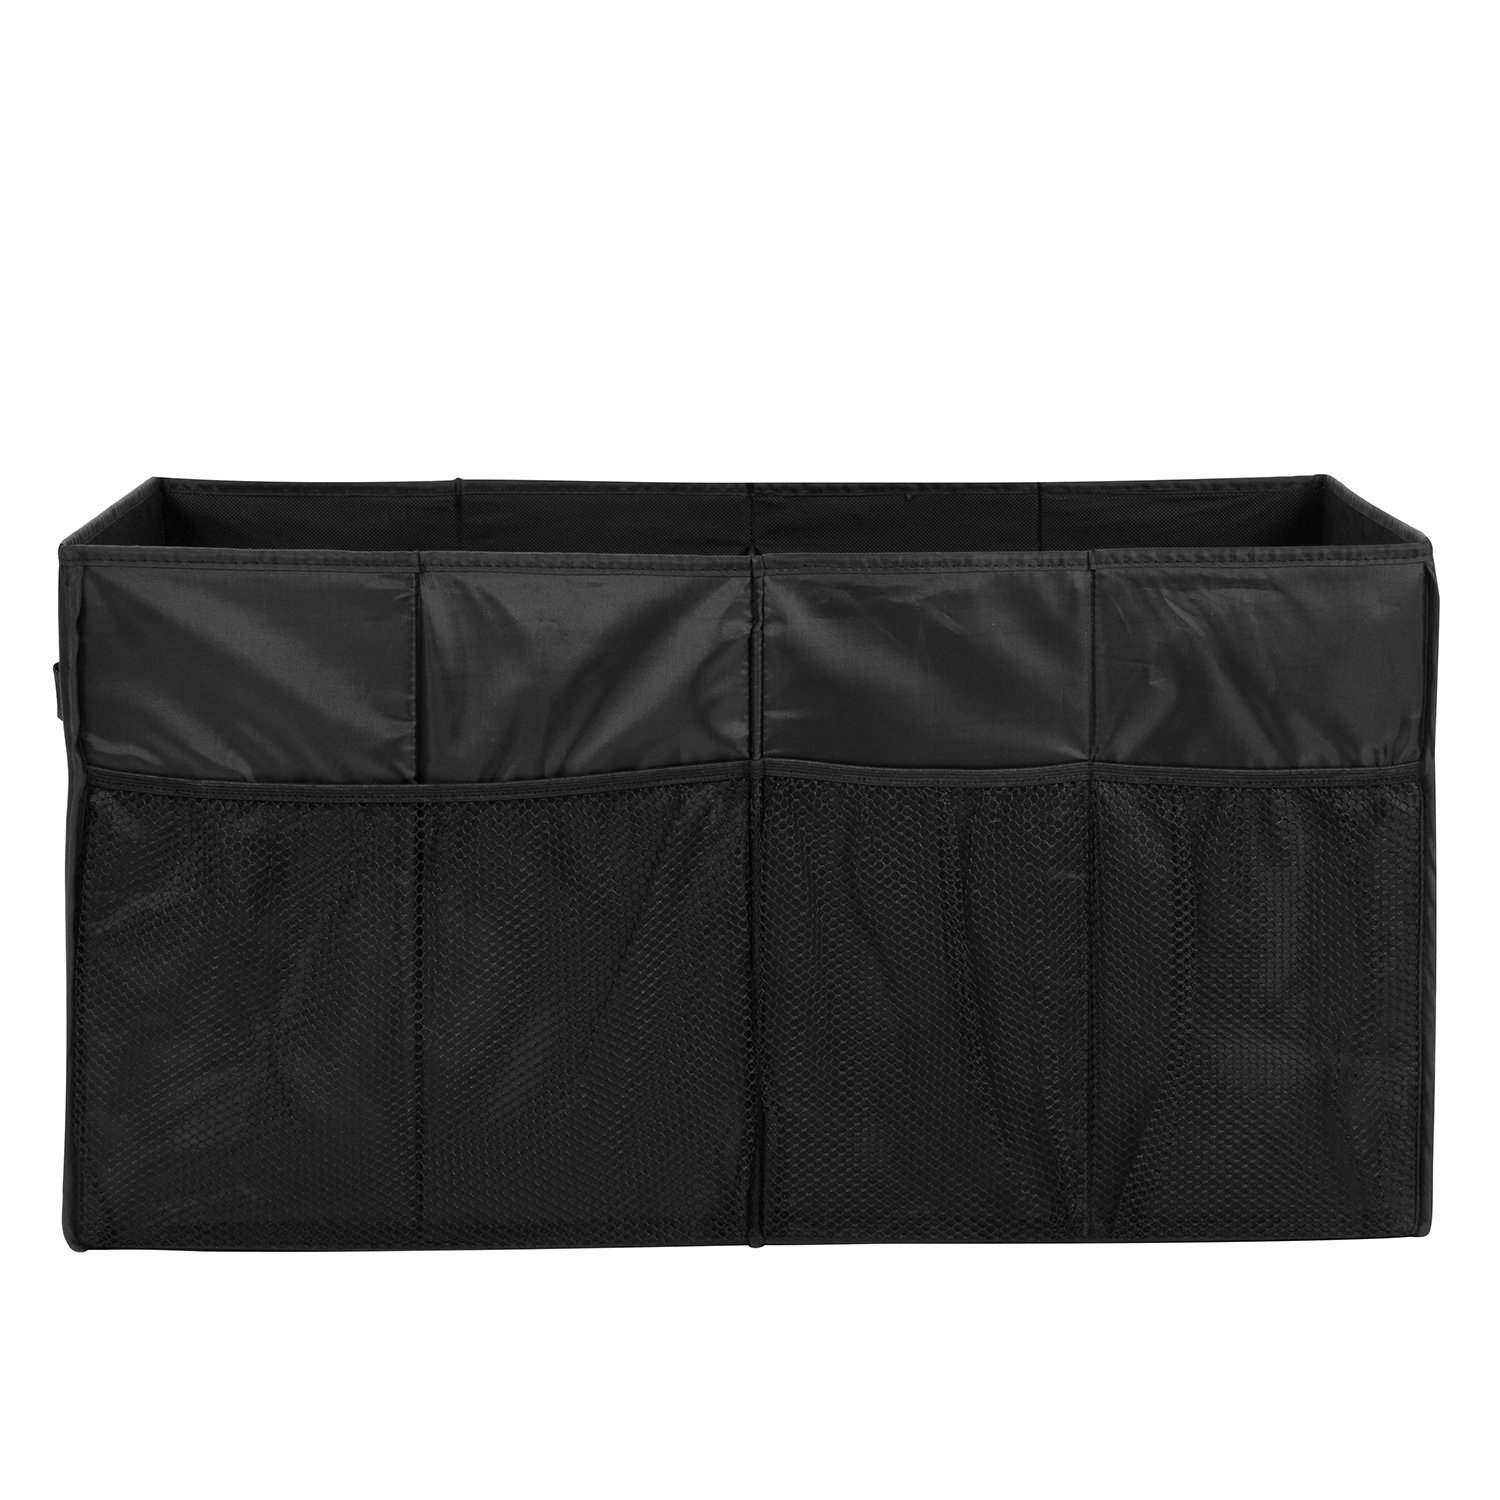 MaidMAX Car Trunk Organizer for SUV with Two Handles and Side Pockets, Foldable, Black, 25.5 Inches Long by MaidMAX (Image #5)